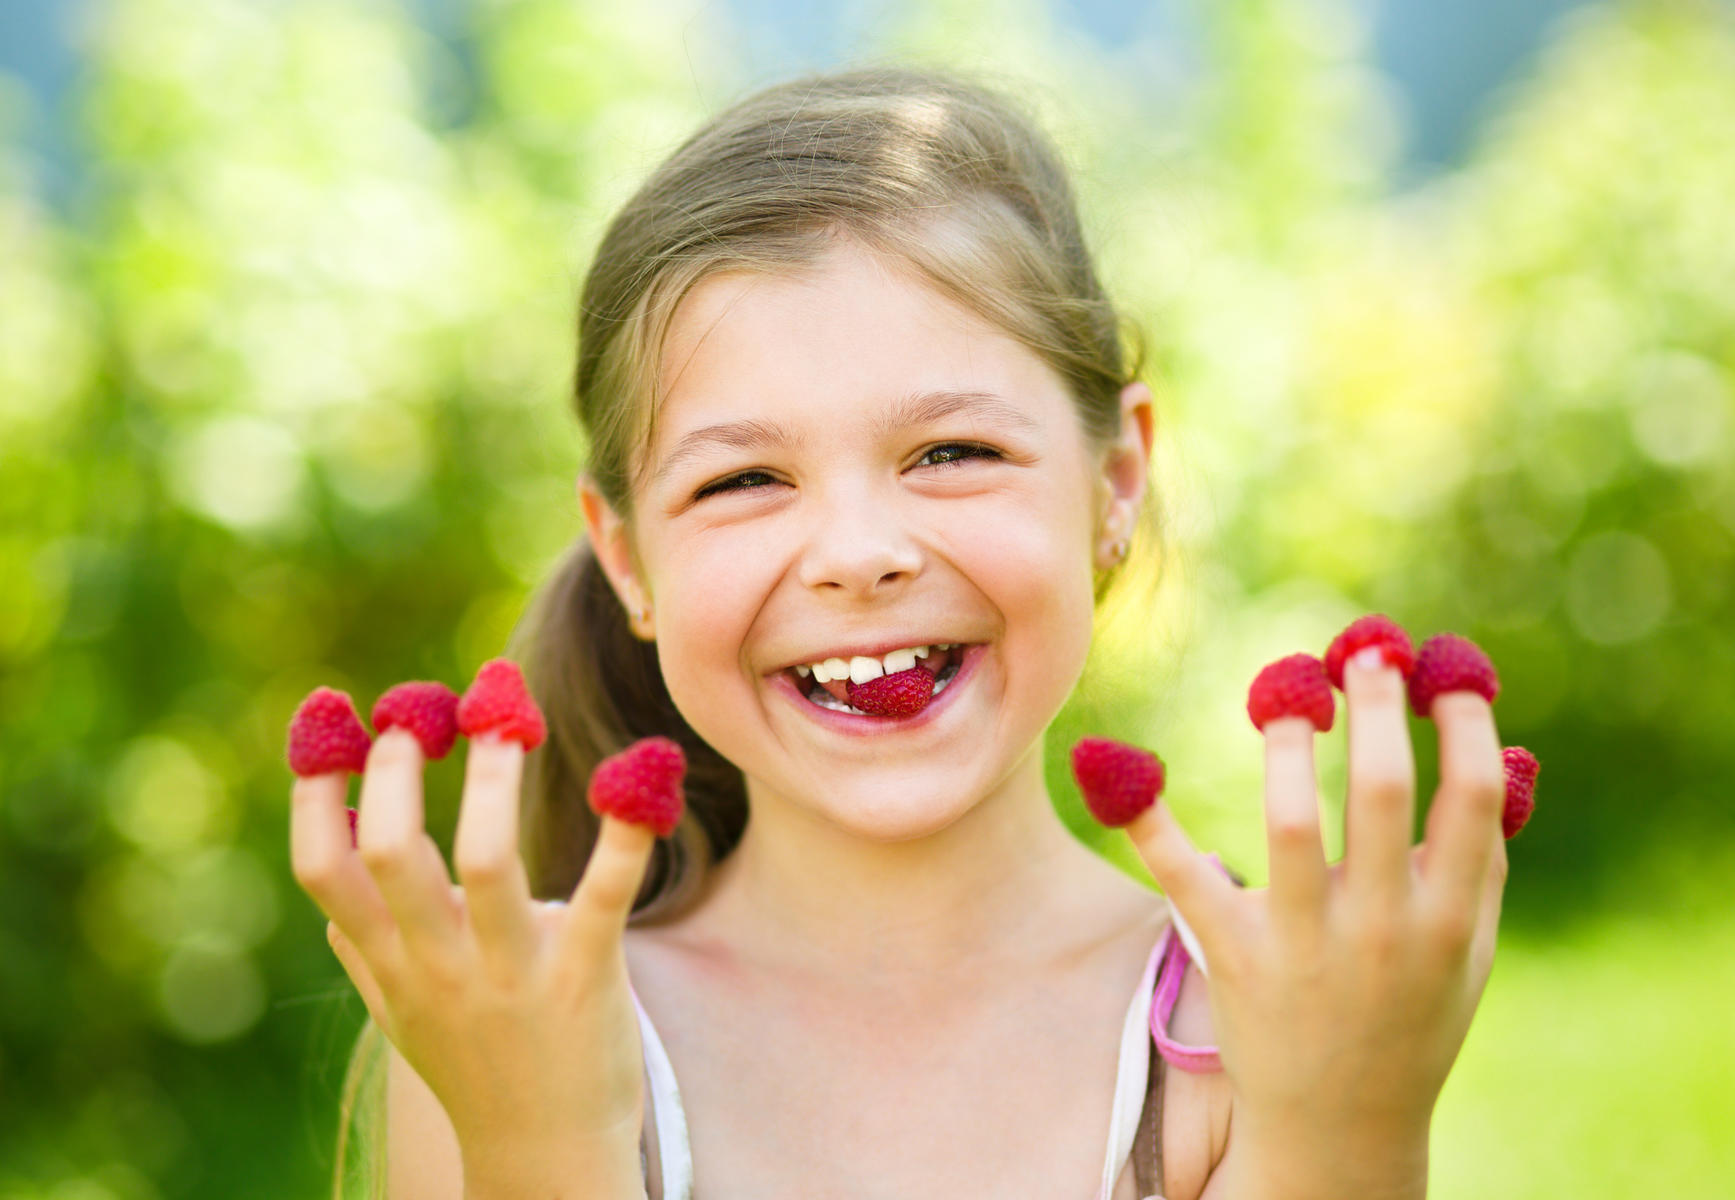 Diet and mental health in kids